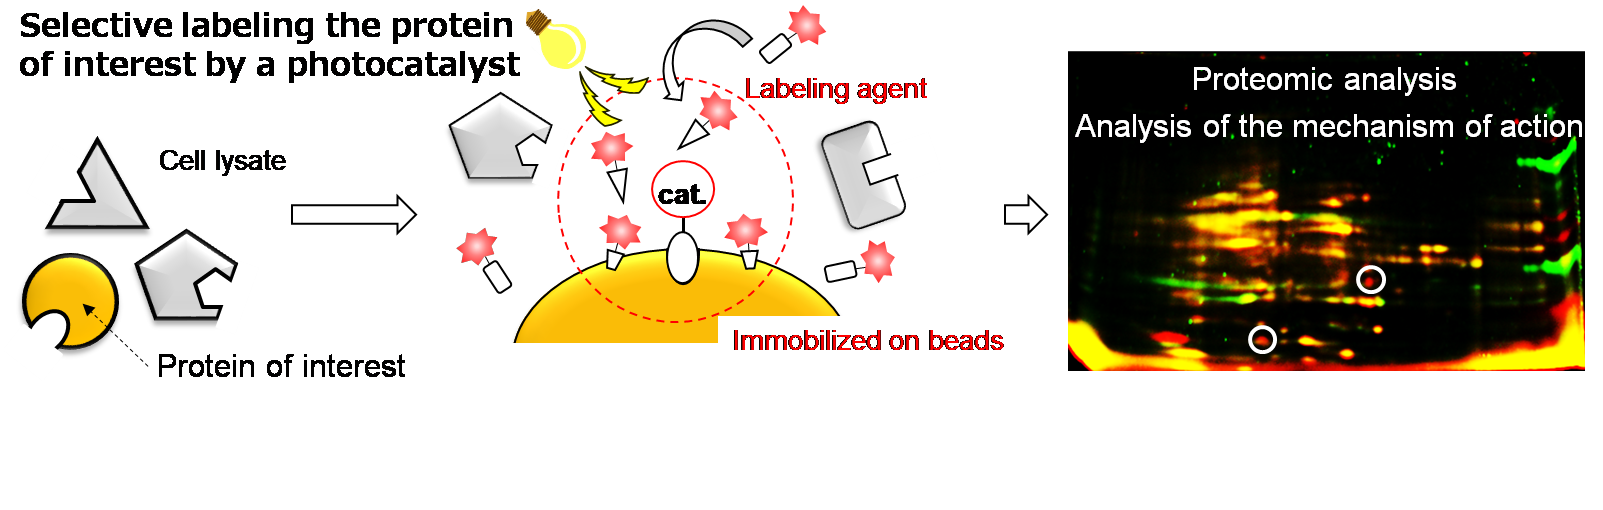 Selective protein labeling using a photoredox catalyst.